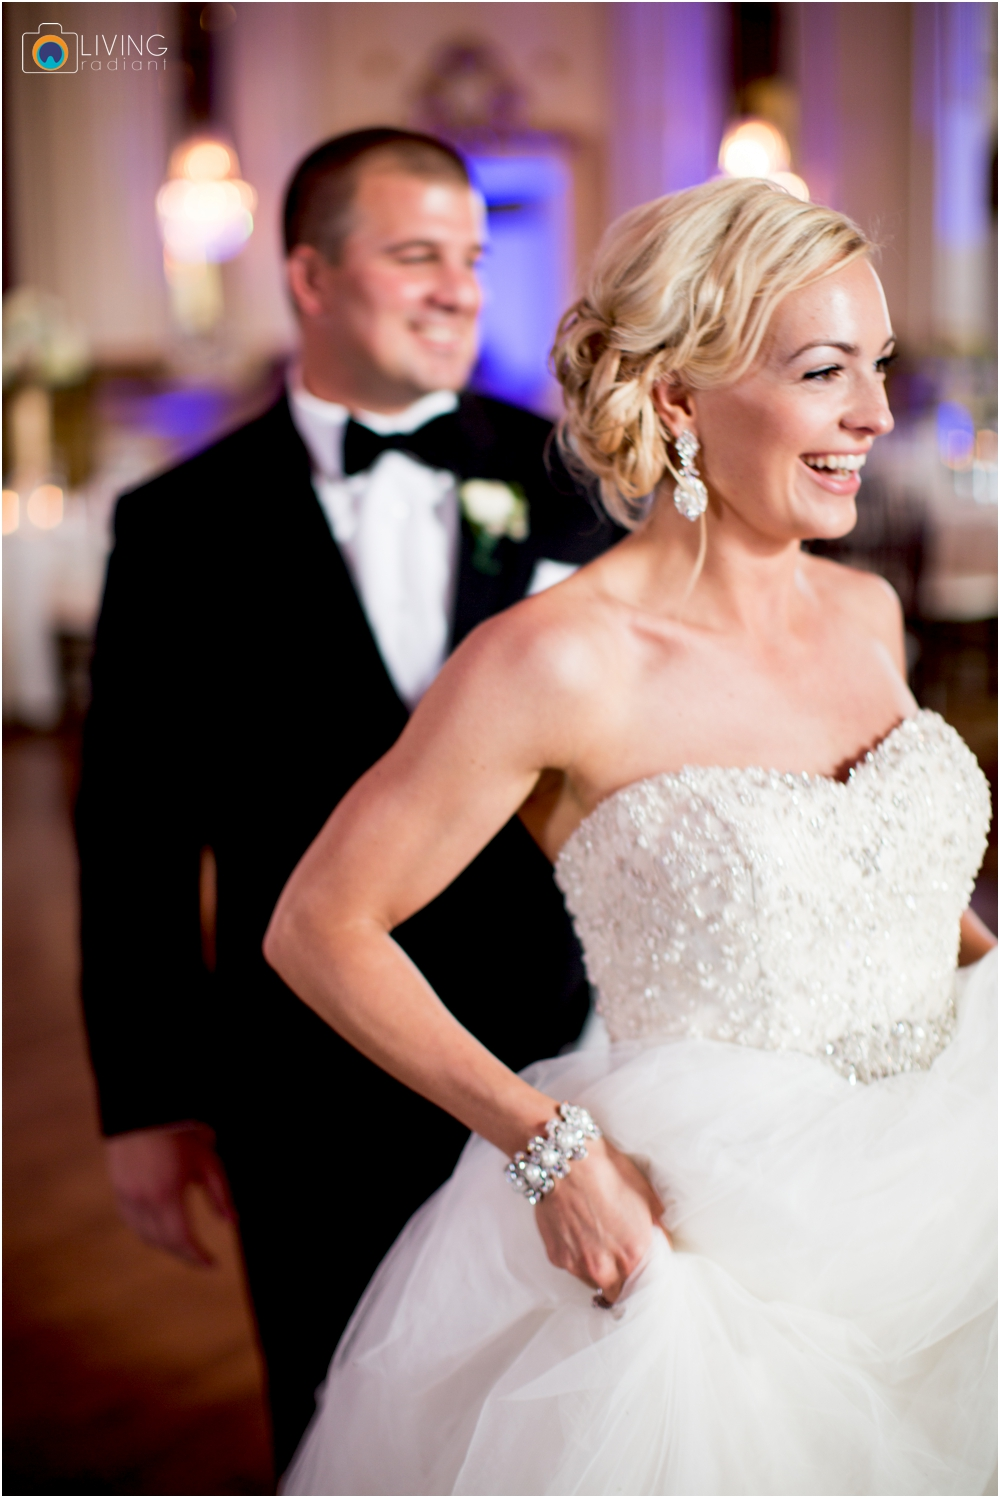 A Baltimore Elegant Ballroom Wedding at the Belvedere Hotel by Living Radiant Photography